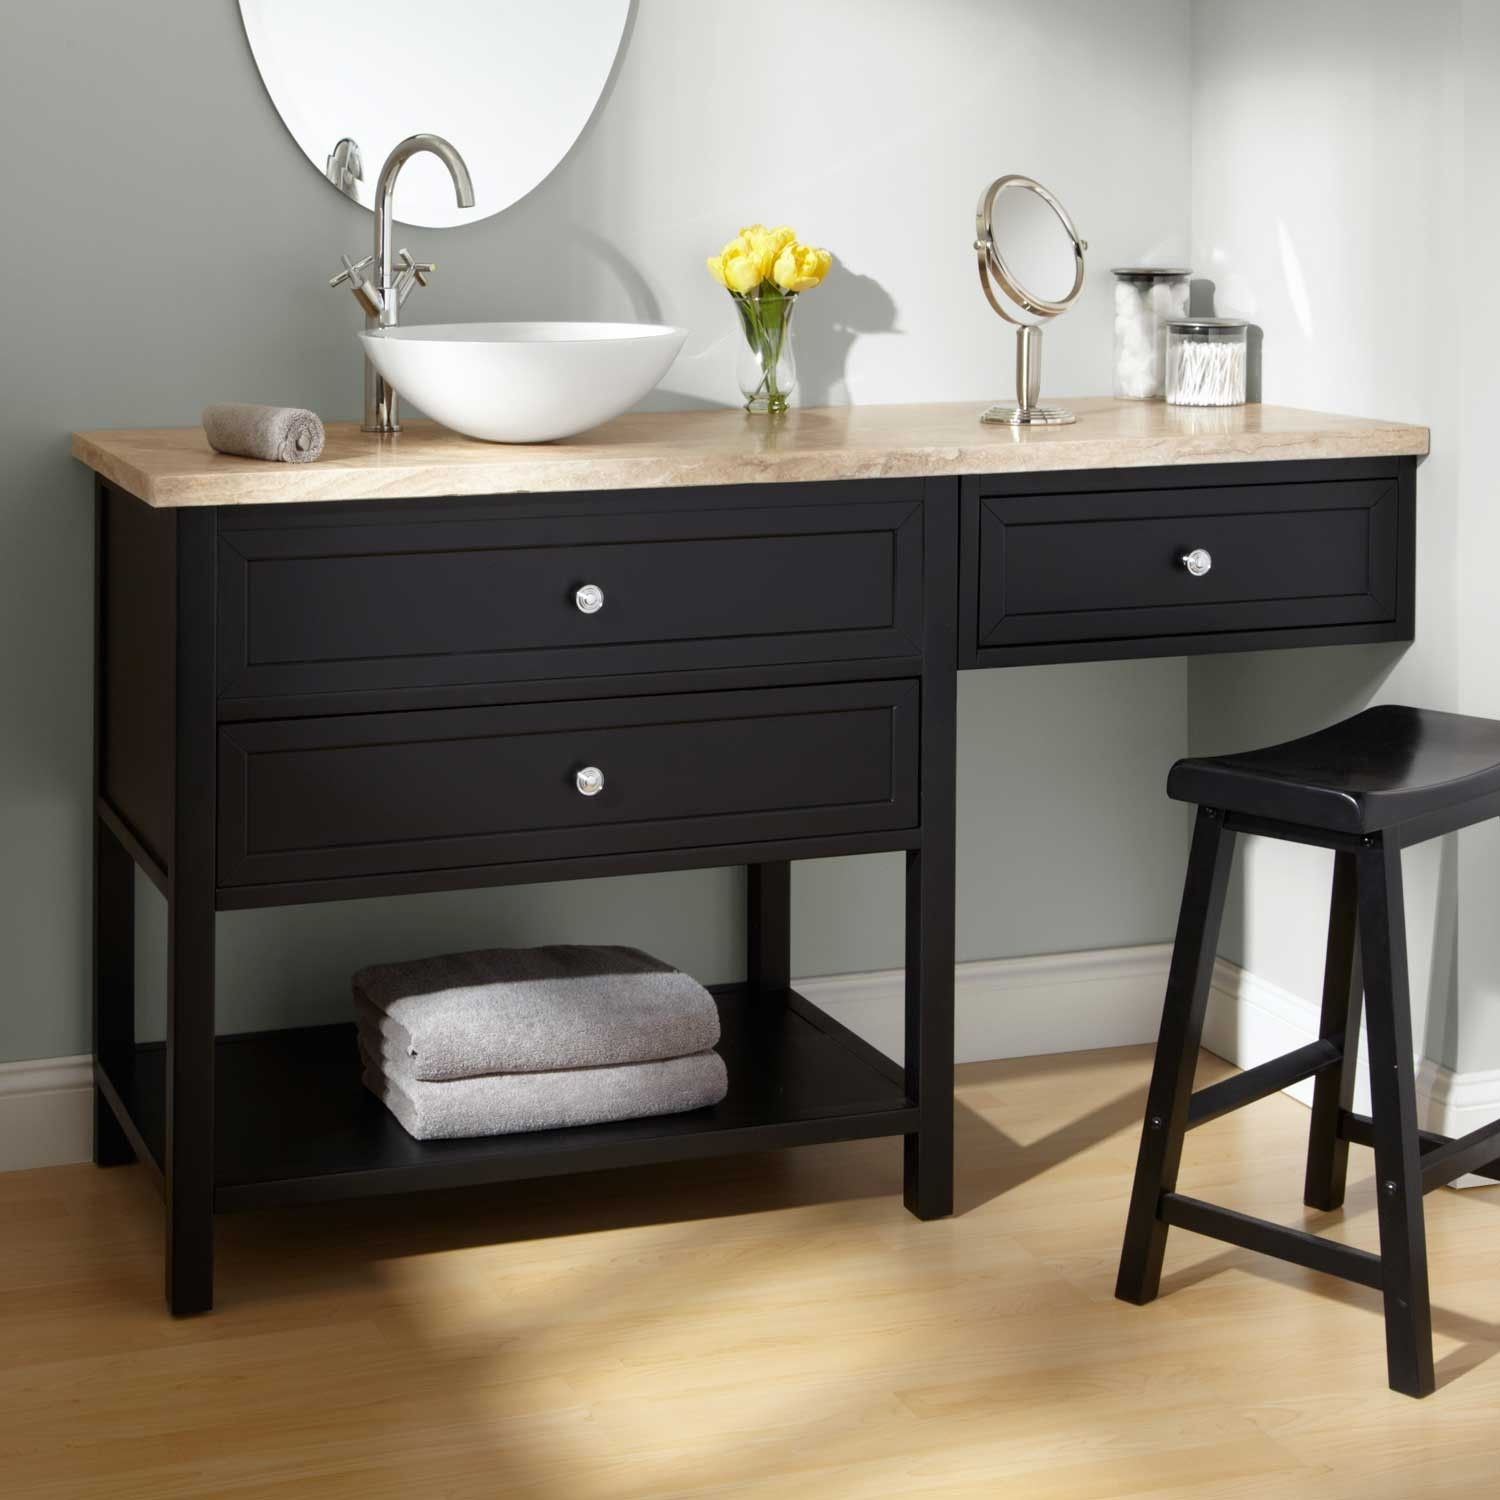 Bathroom makeup vanity and chair sink vanities 60 Small makeup vanity